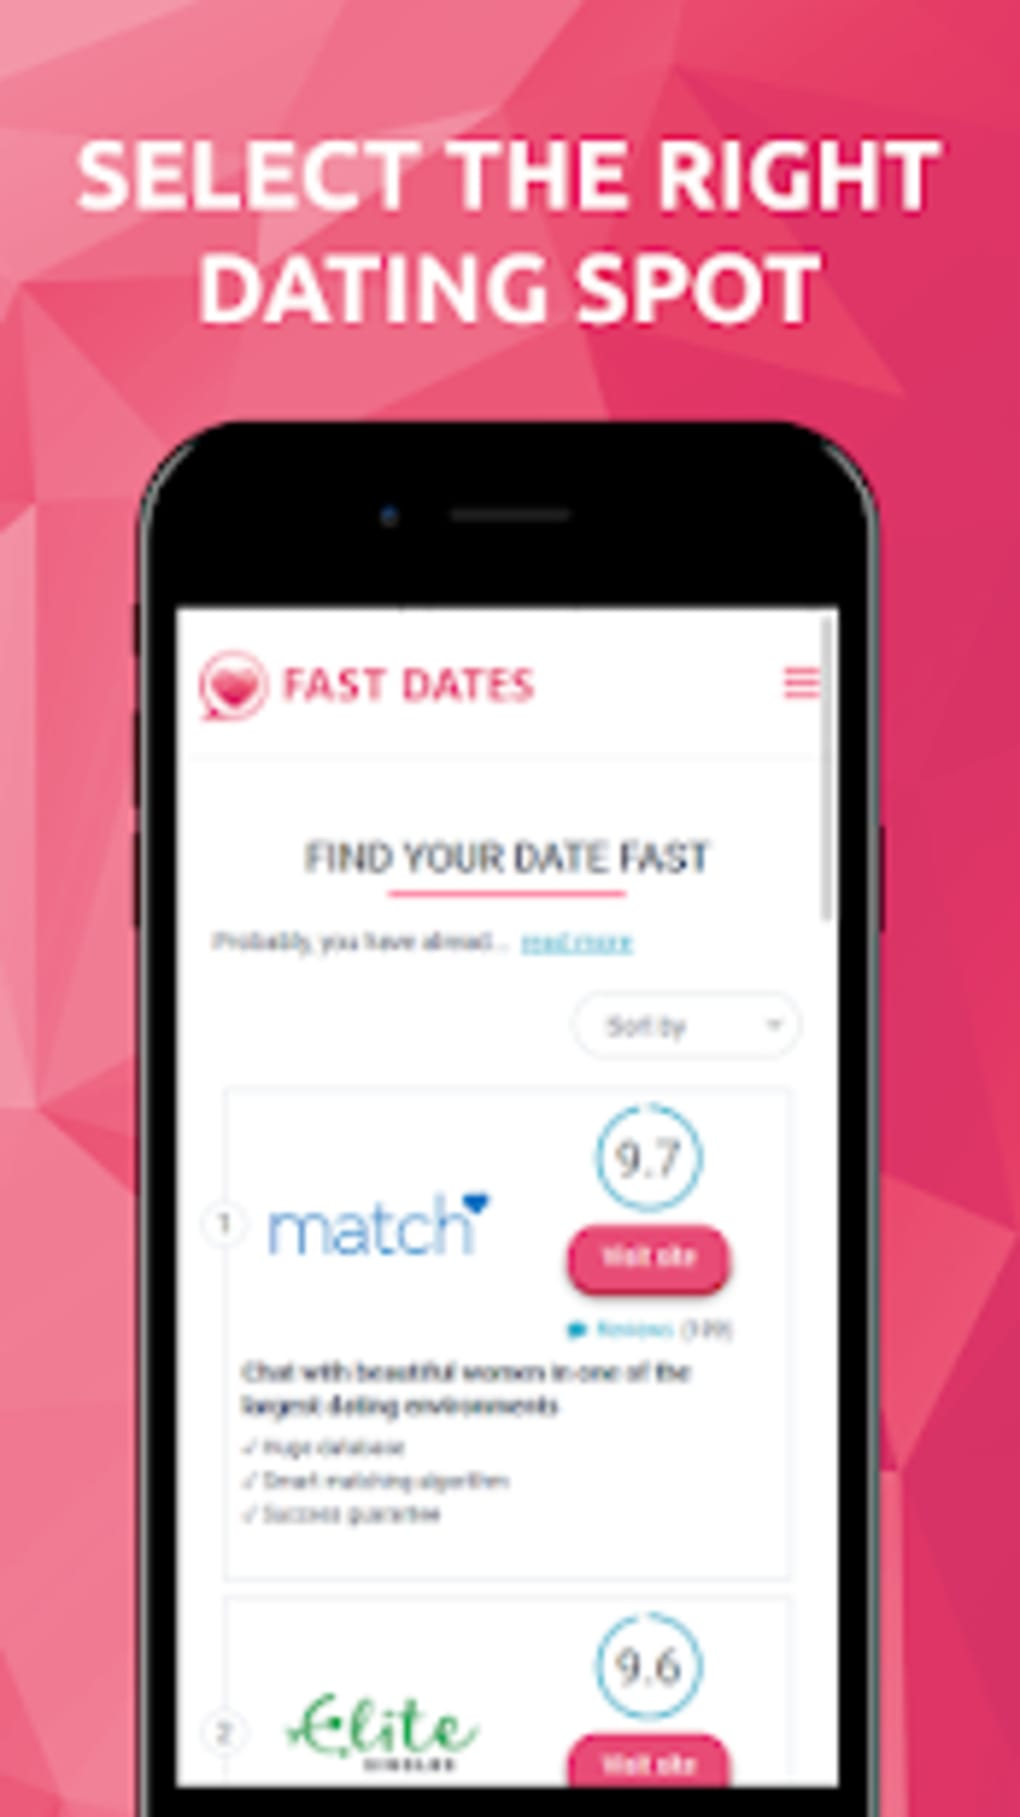 Fast phone dating